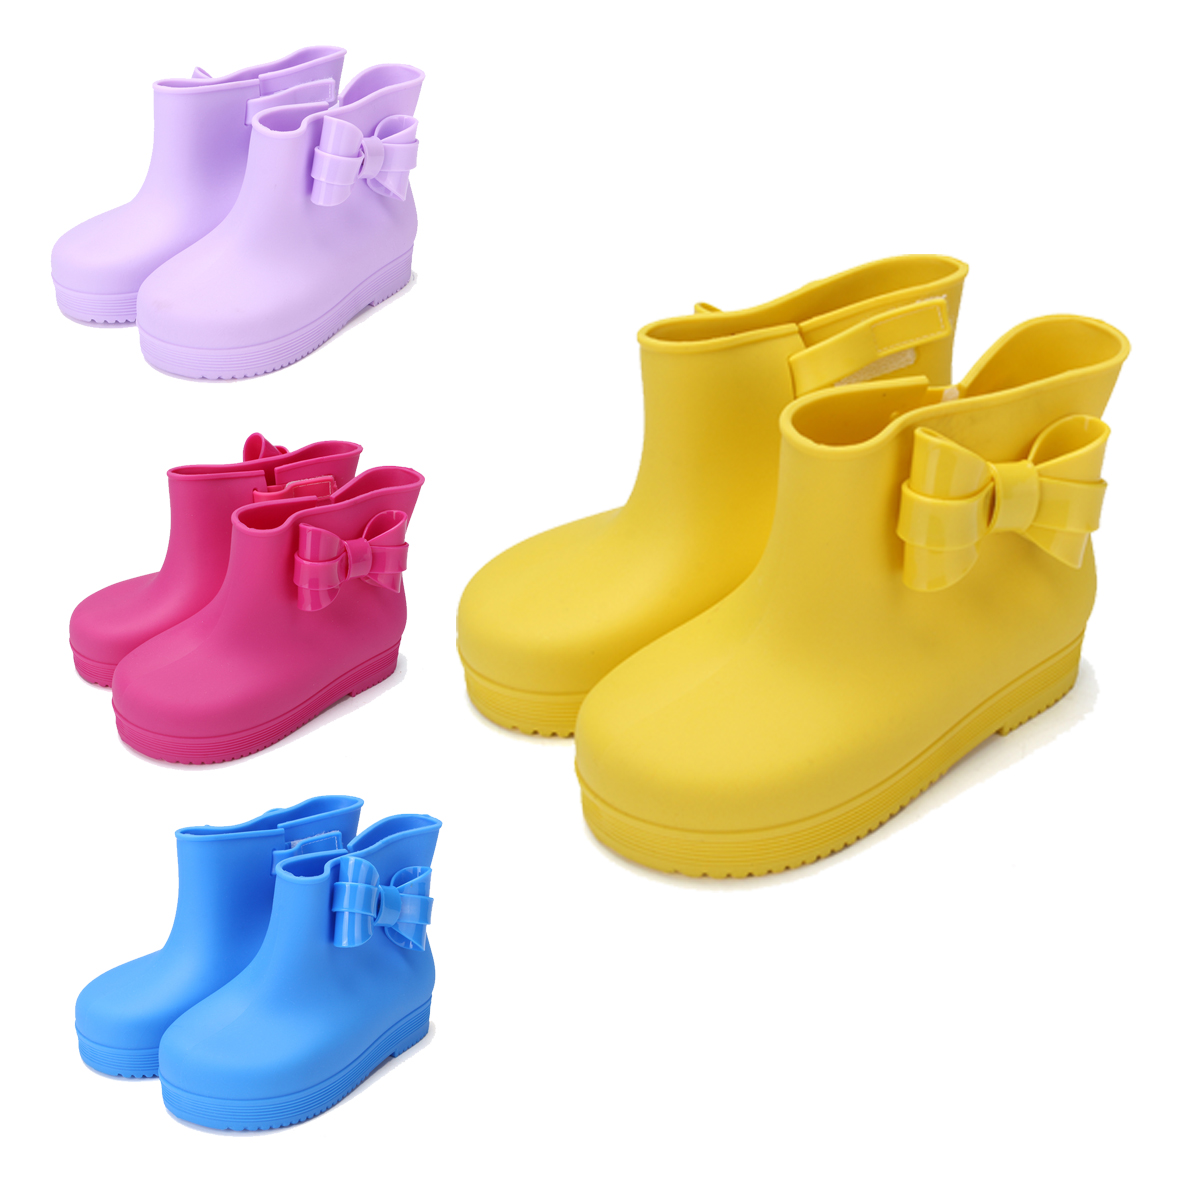 Cute Children Kids Cartoon Rain Boots Rubber Wellies Jelly Shoes Multi-color